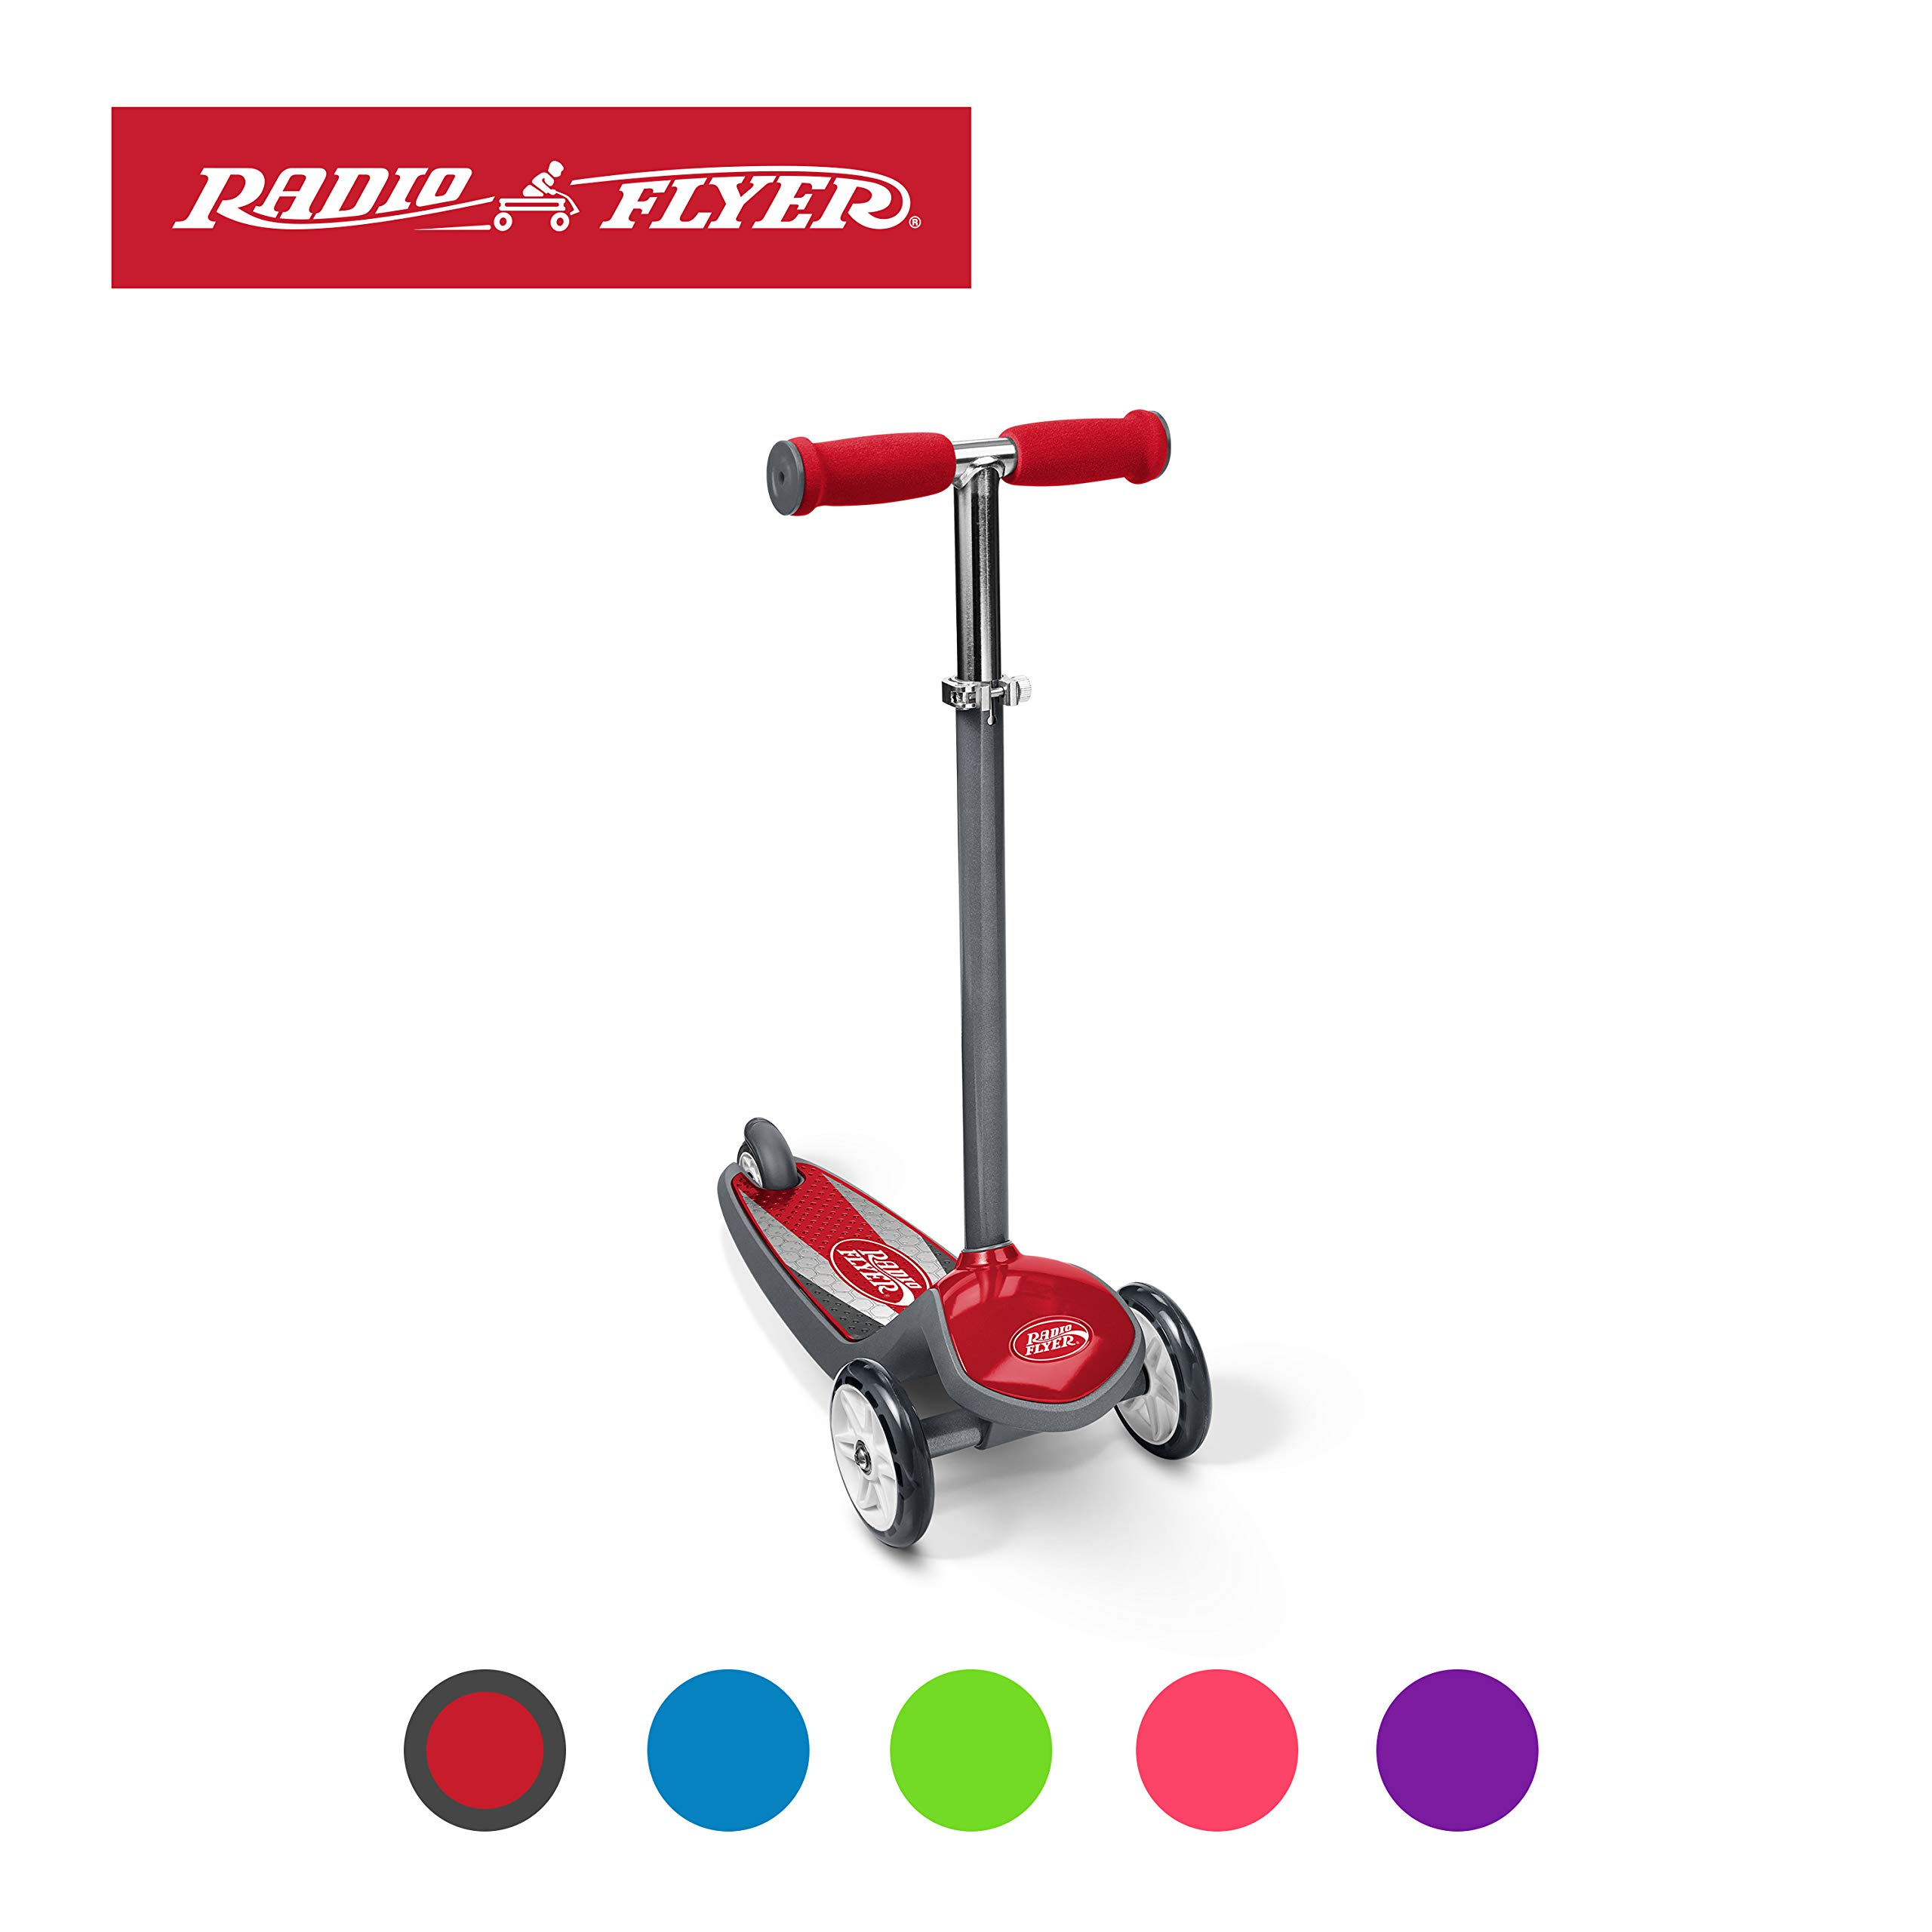 Radio Flyer Color FX EZ Glider 3 Wheel Scooter, Red by Radio Flyer